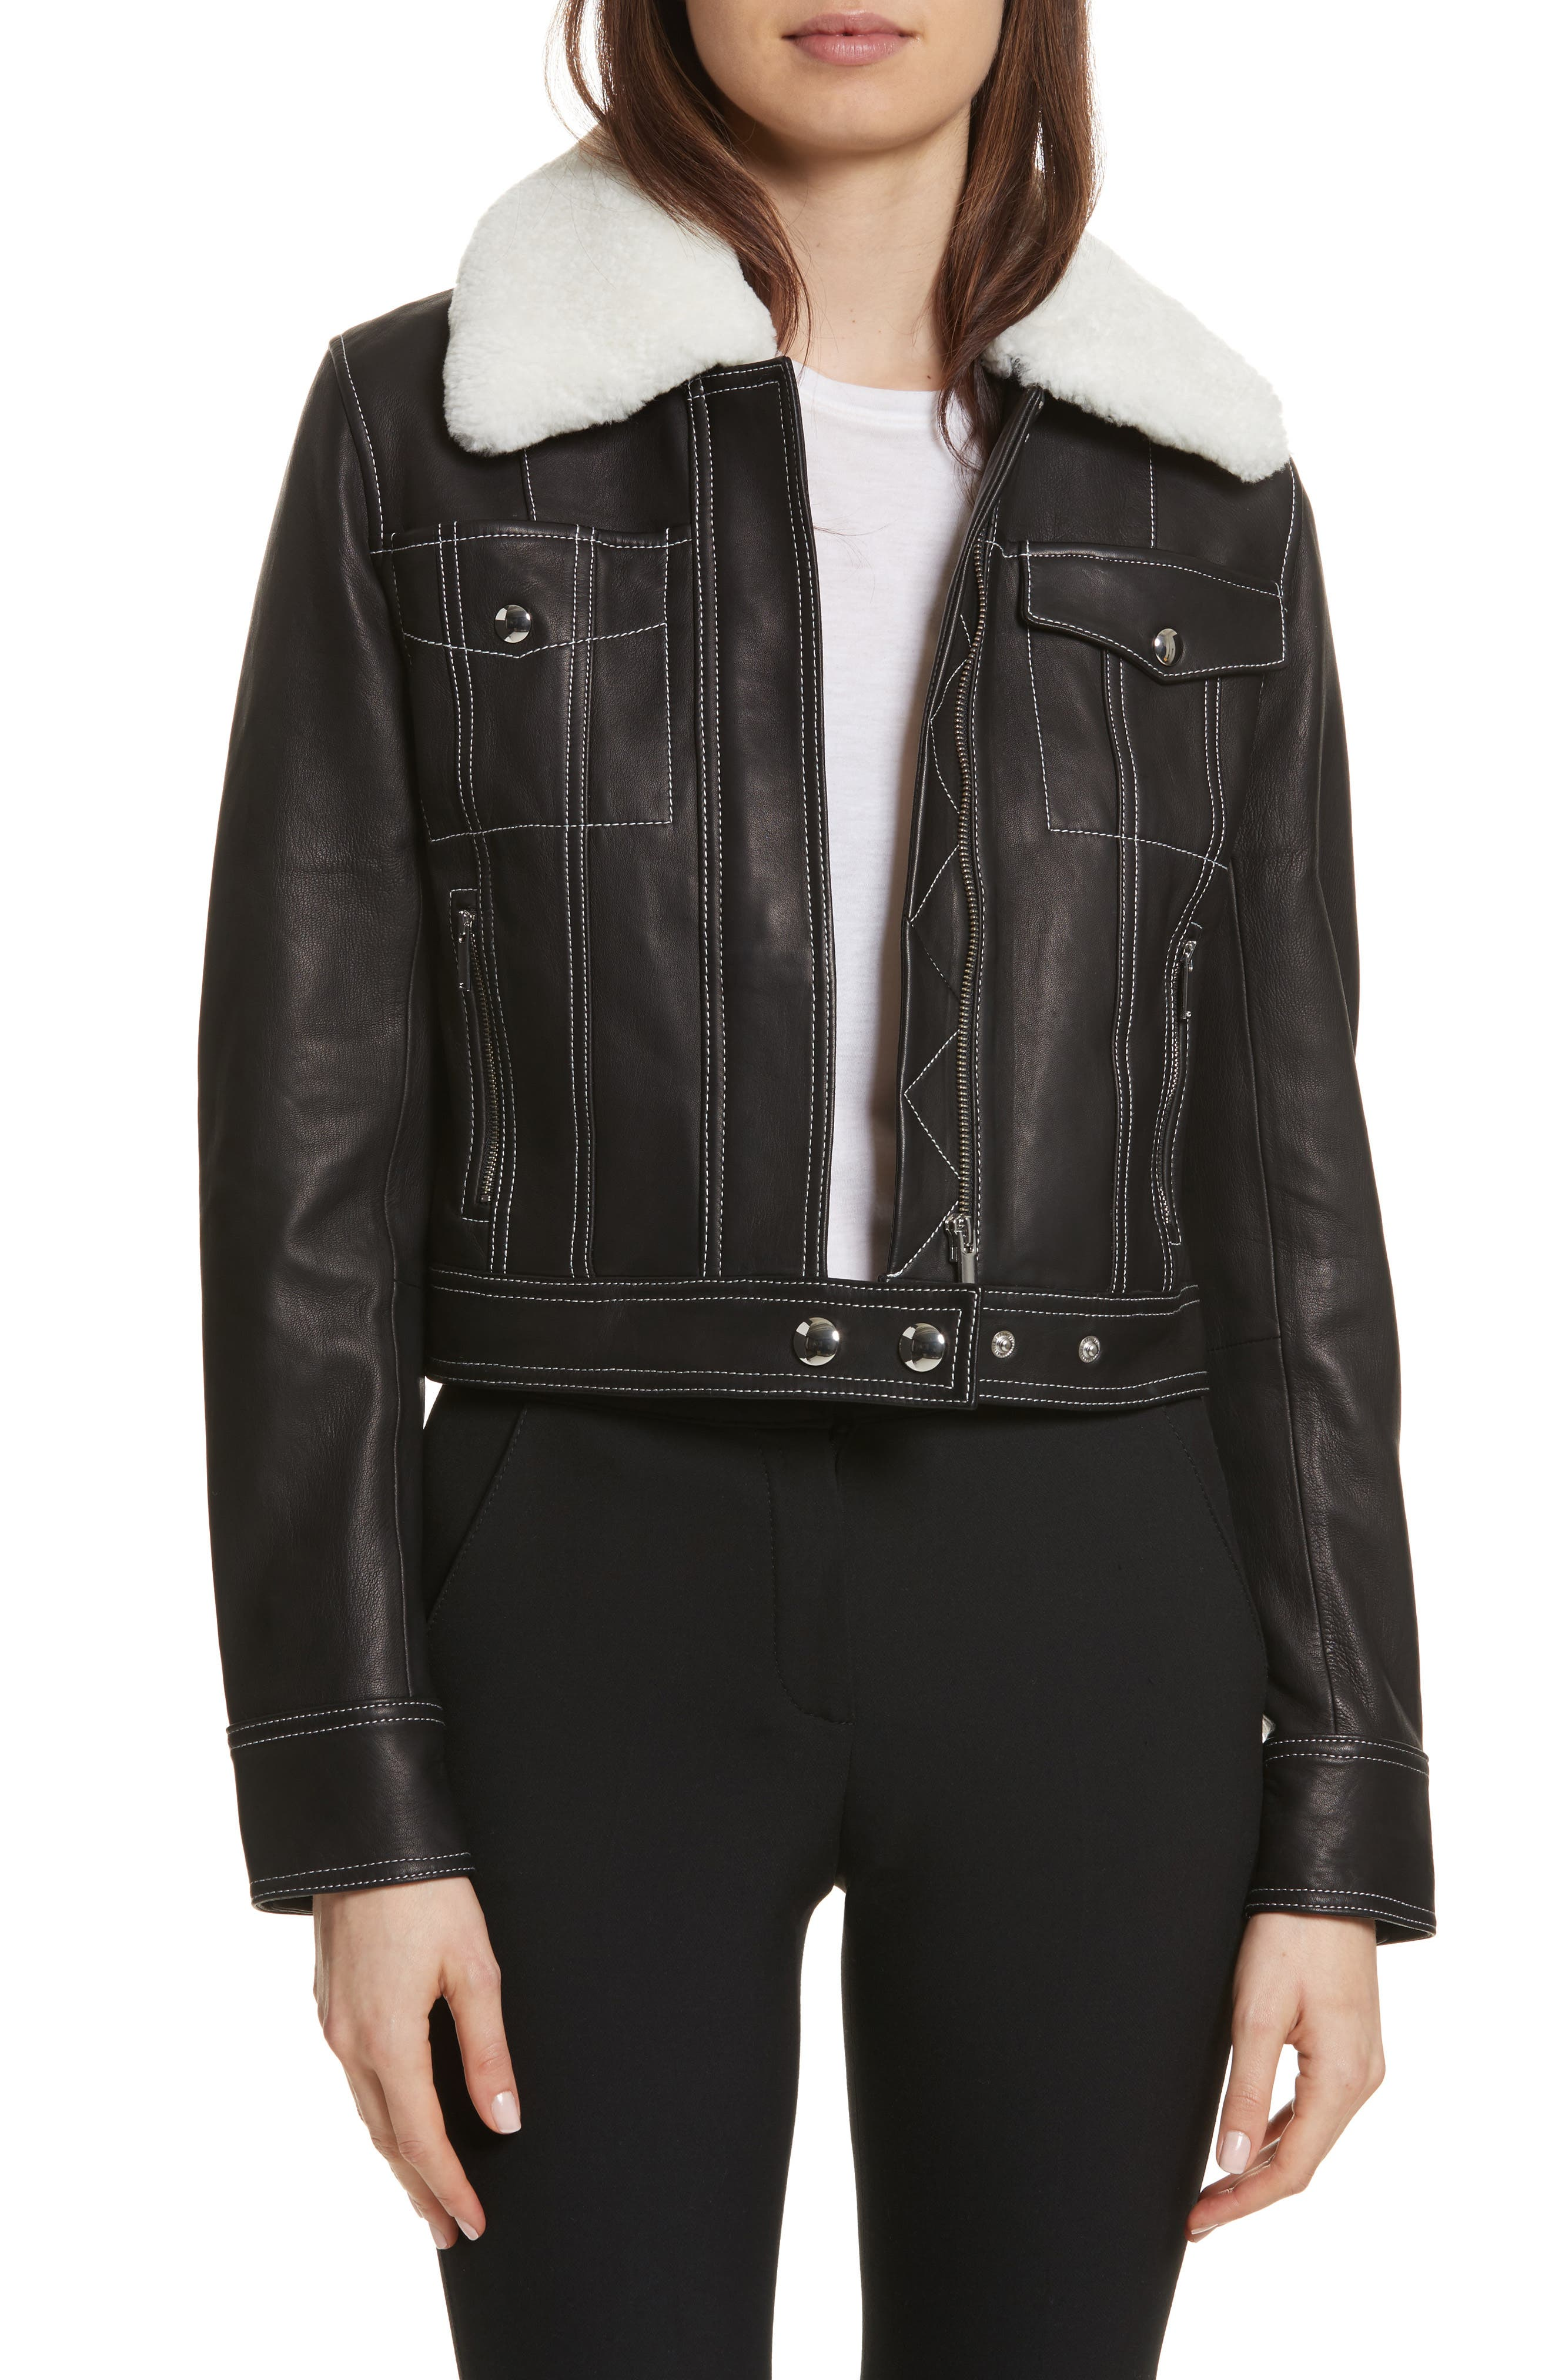 GREY Jason Wu Shrunken Leather Jacket with Removable Genuine Shearling Collar, Main, color, 009